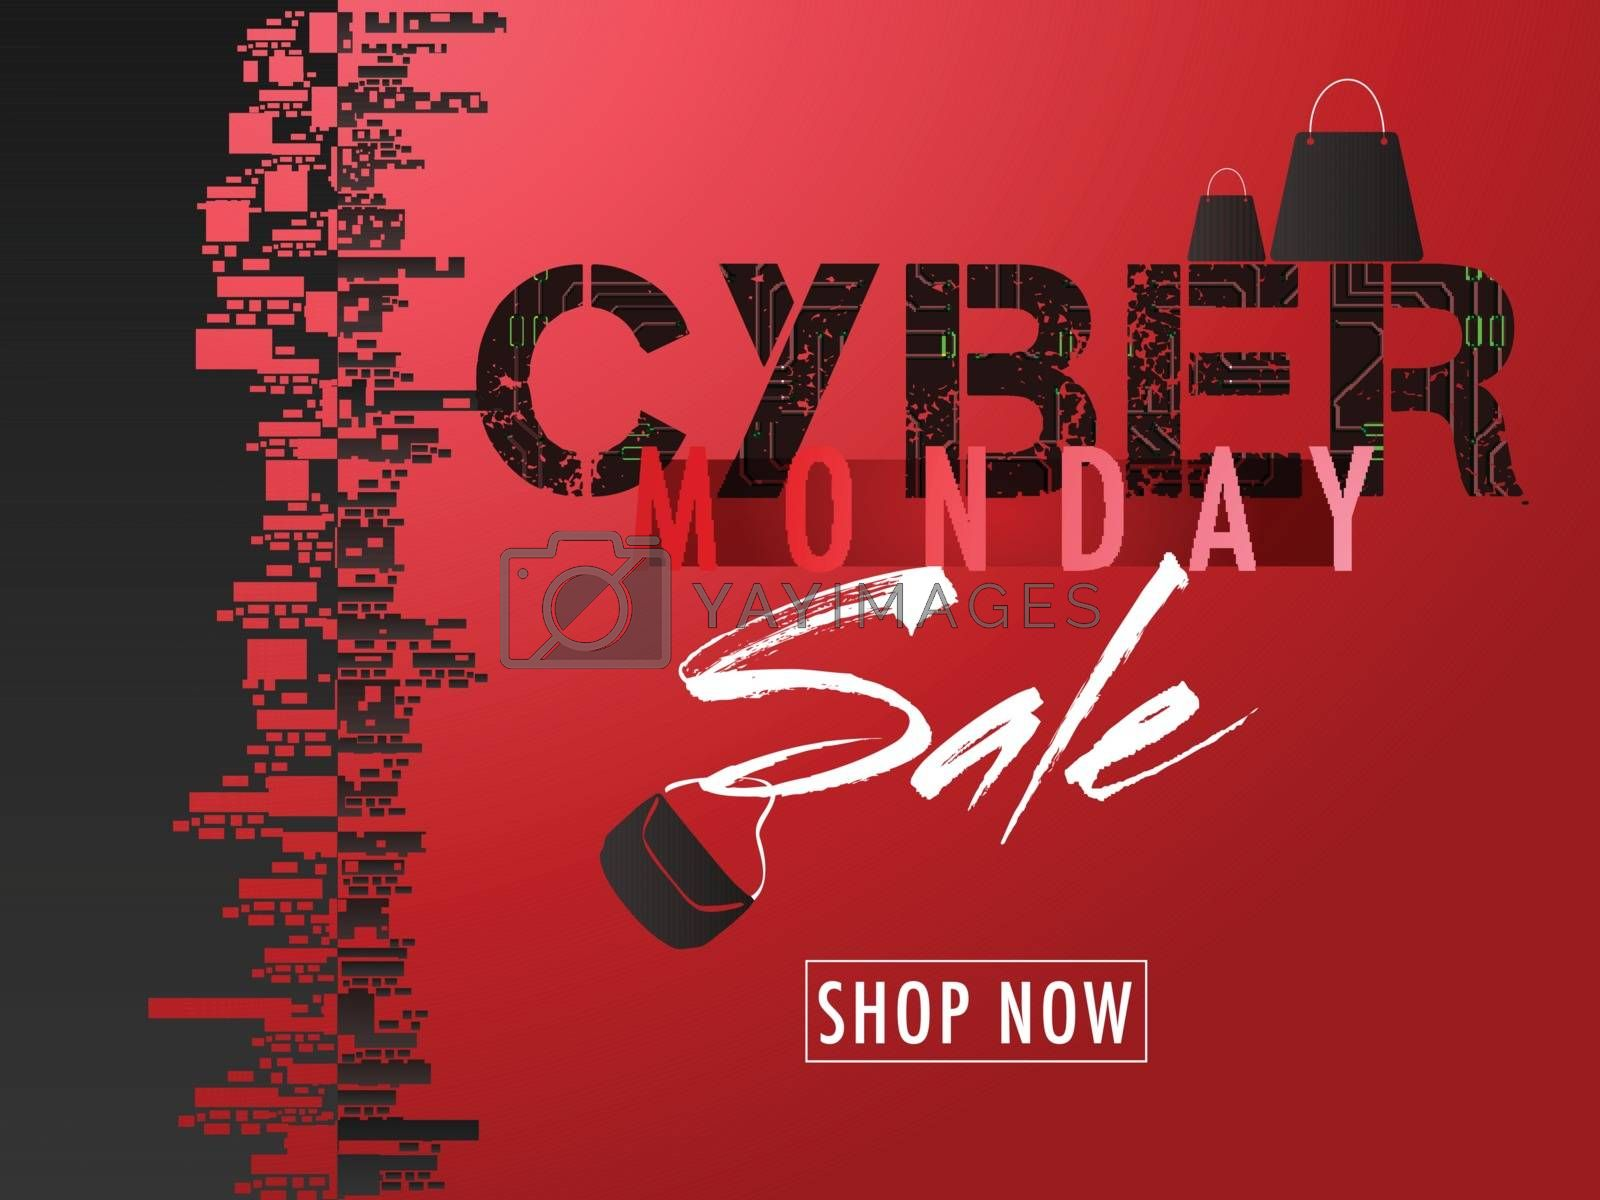 Creative template or advertisement banner design for Cyber Monday Sale in red and black color.